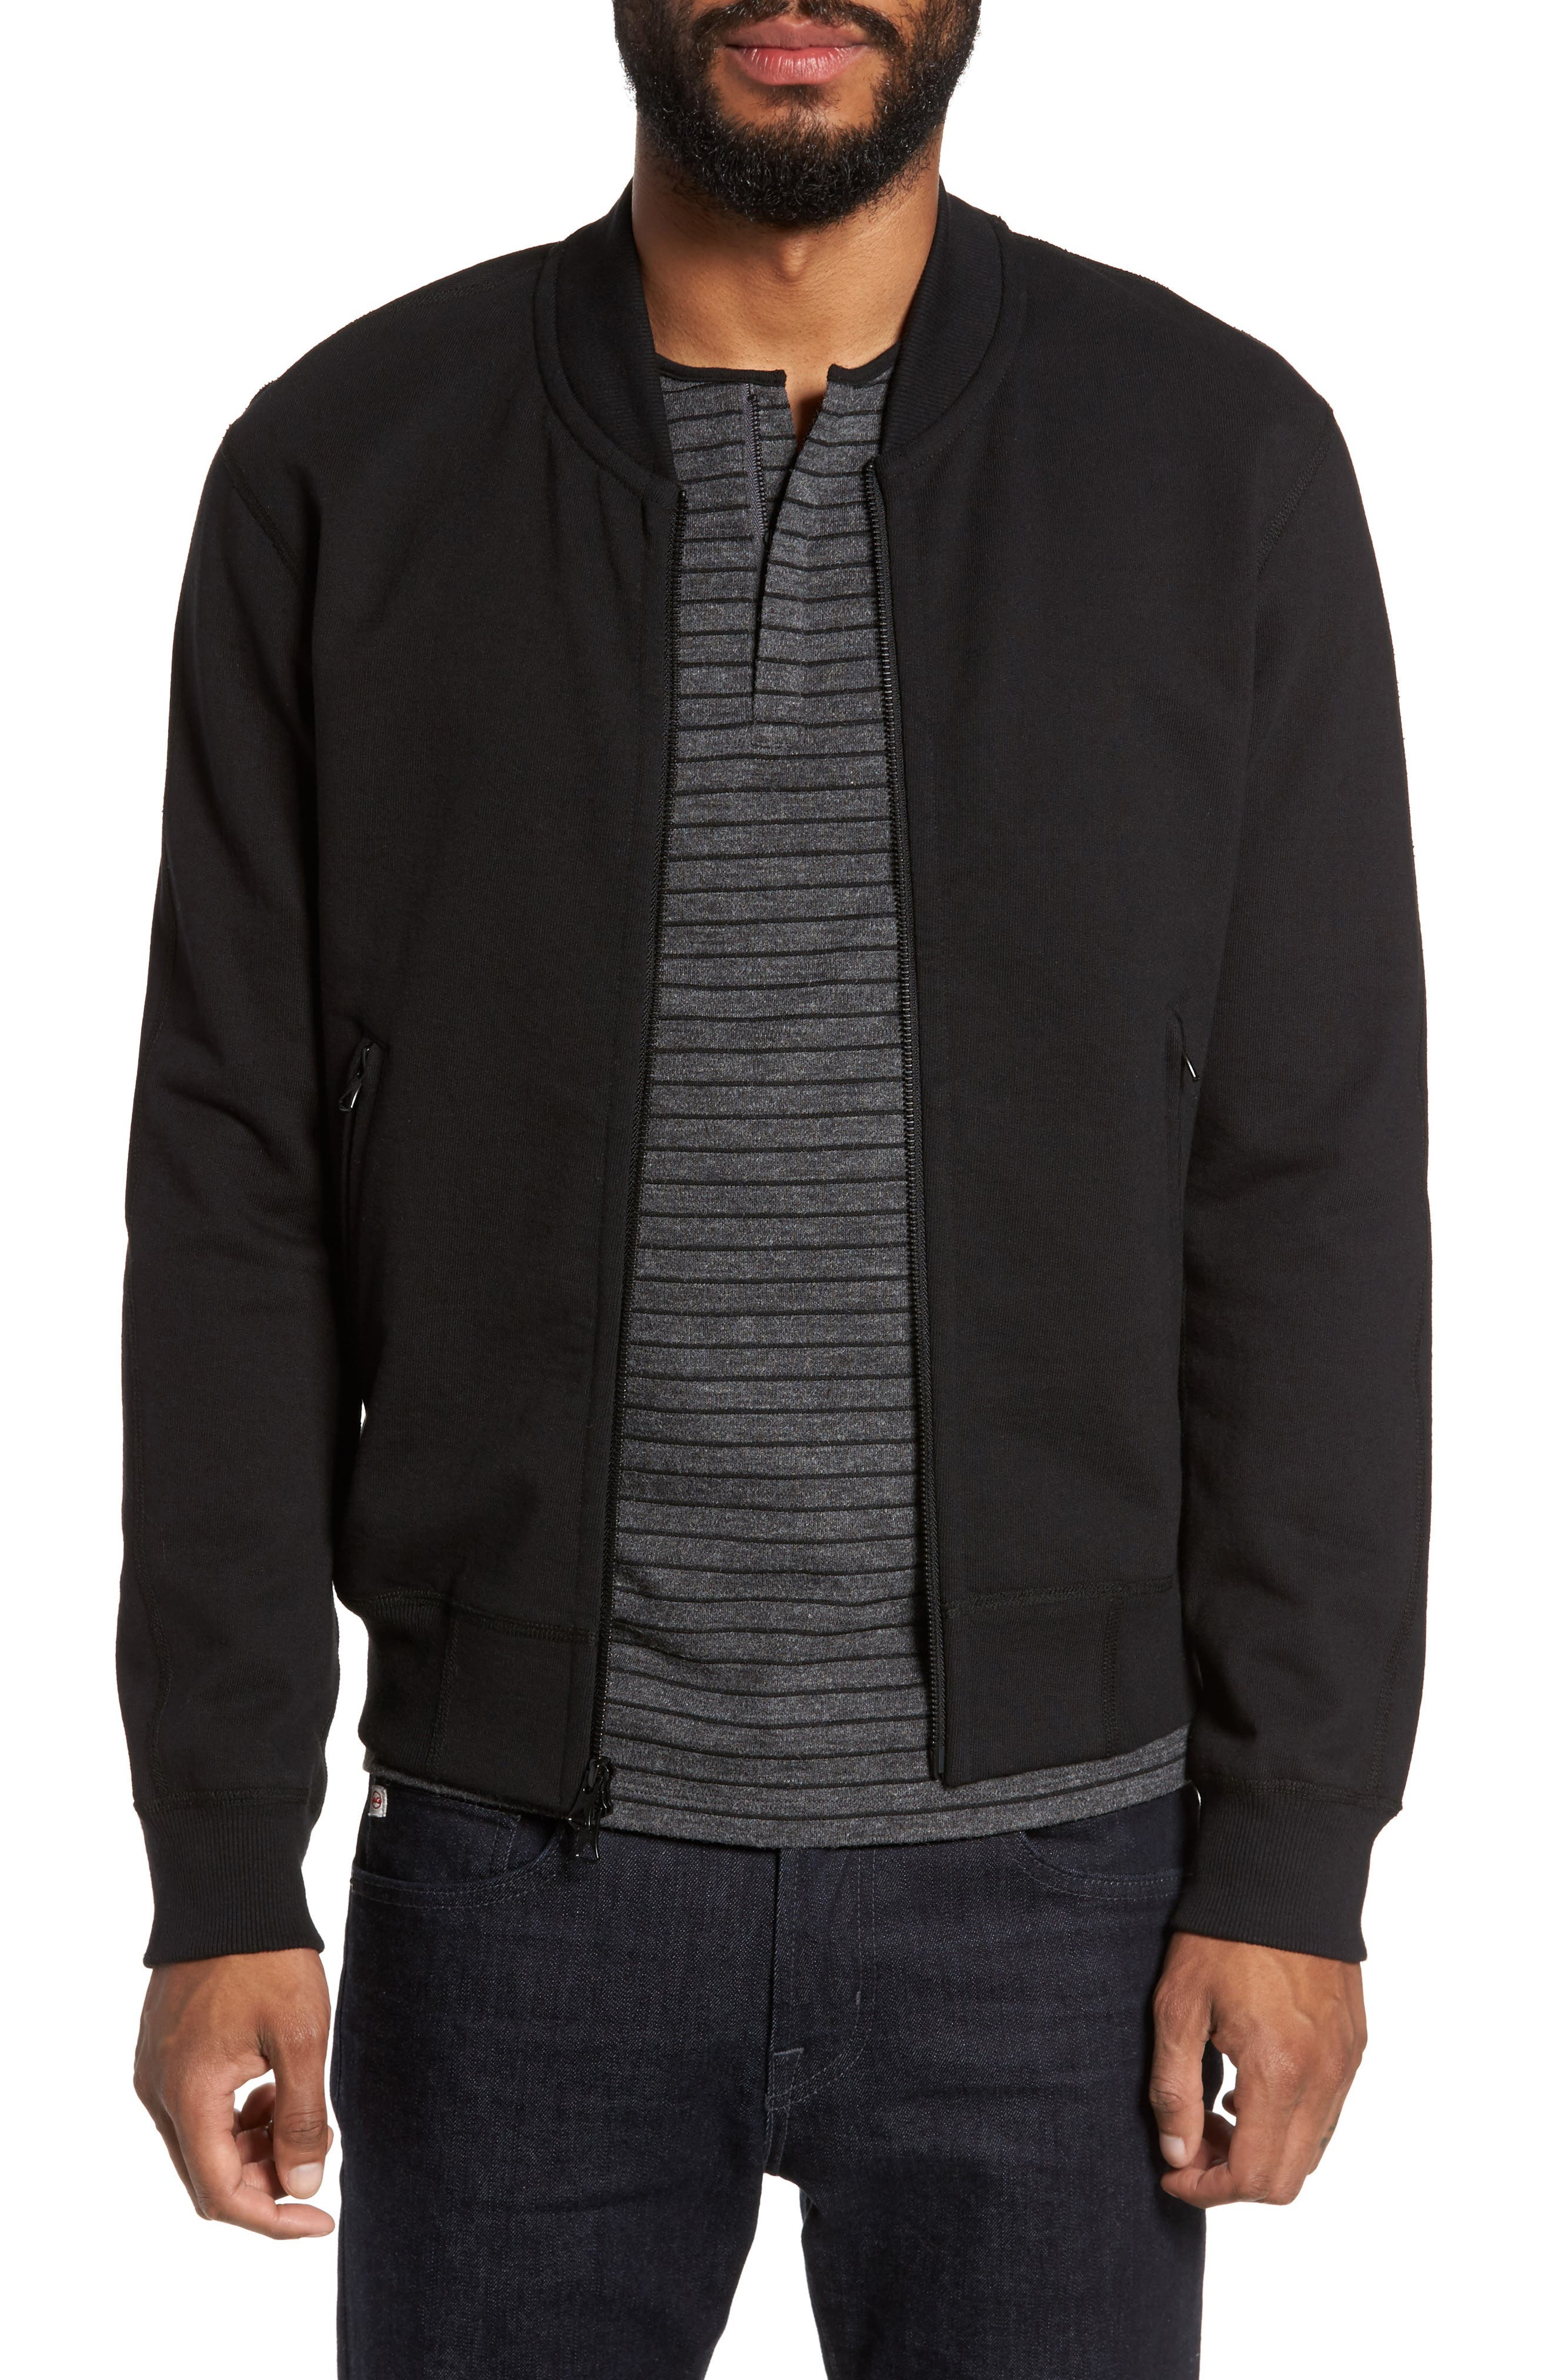 Alternate Image 1 Selected - Reigning Champ Varsity Heavyweight Terry Jacket